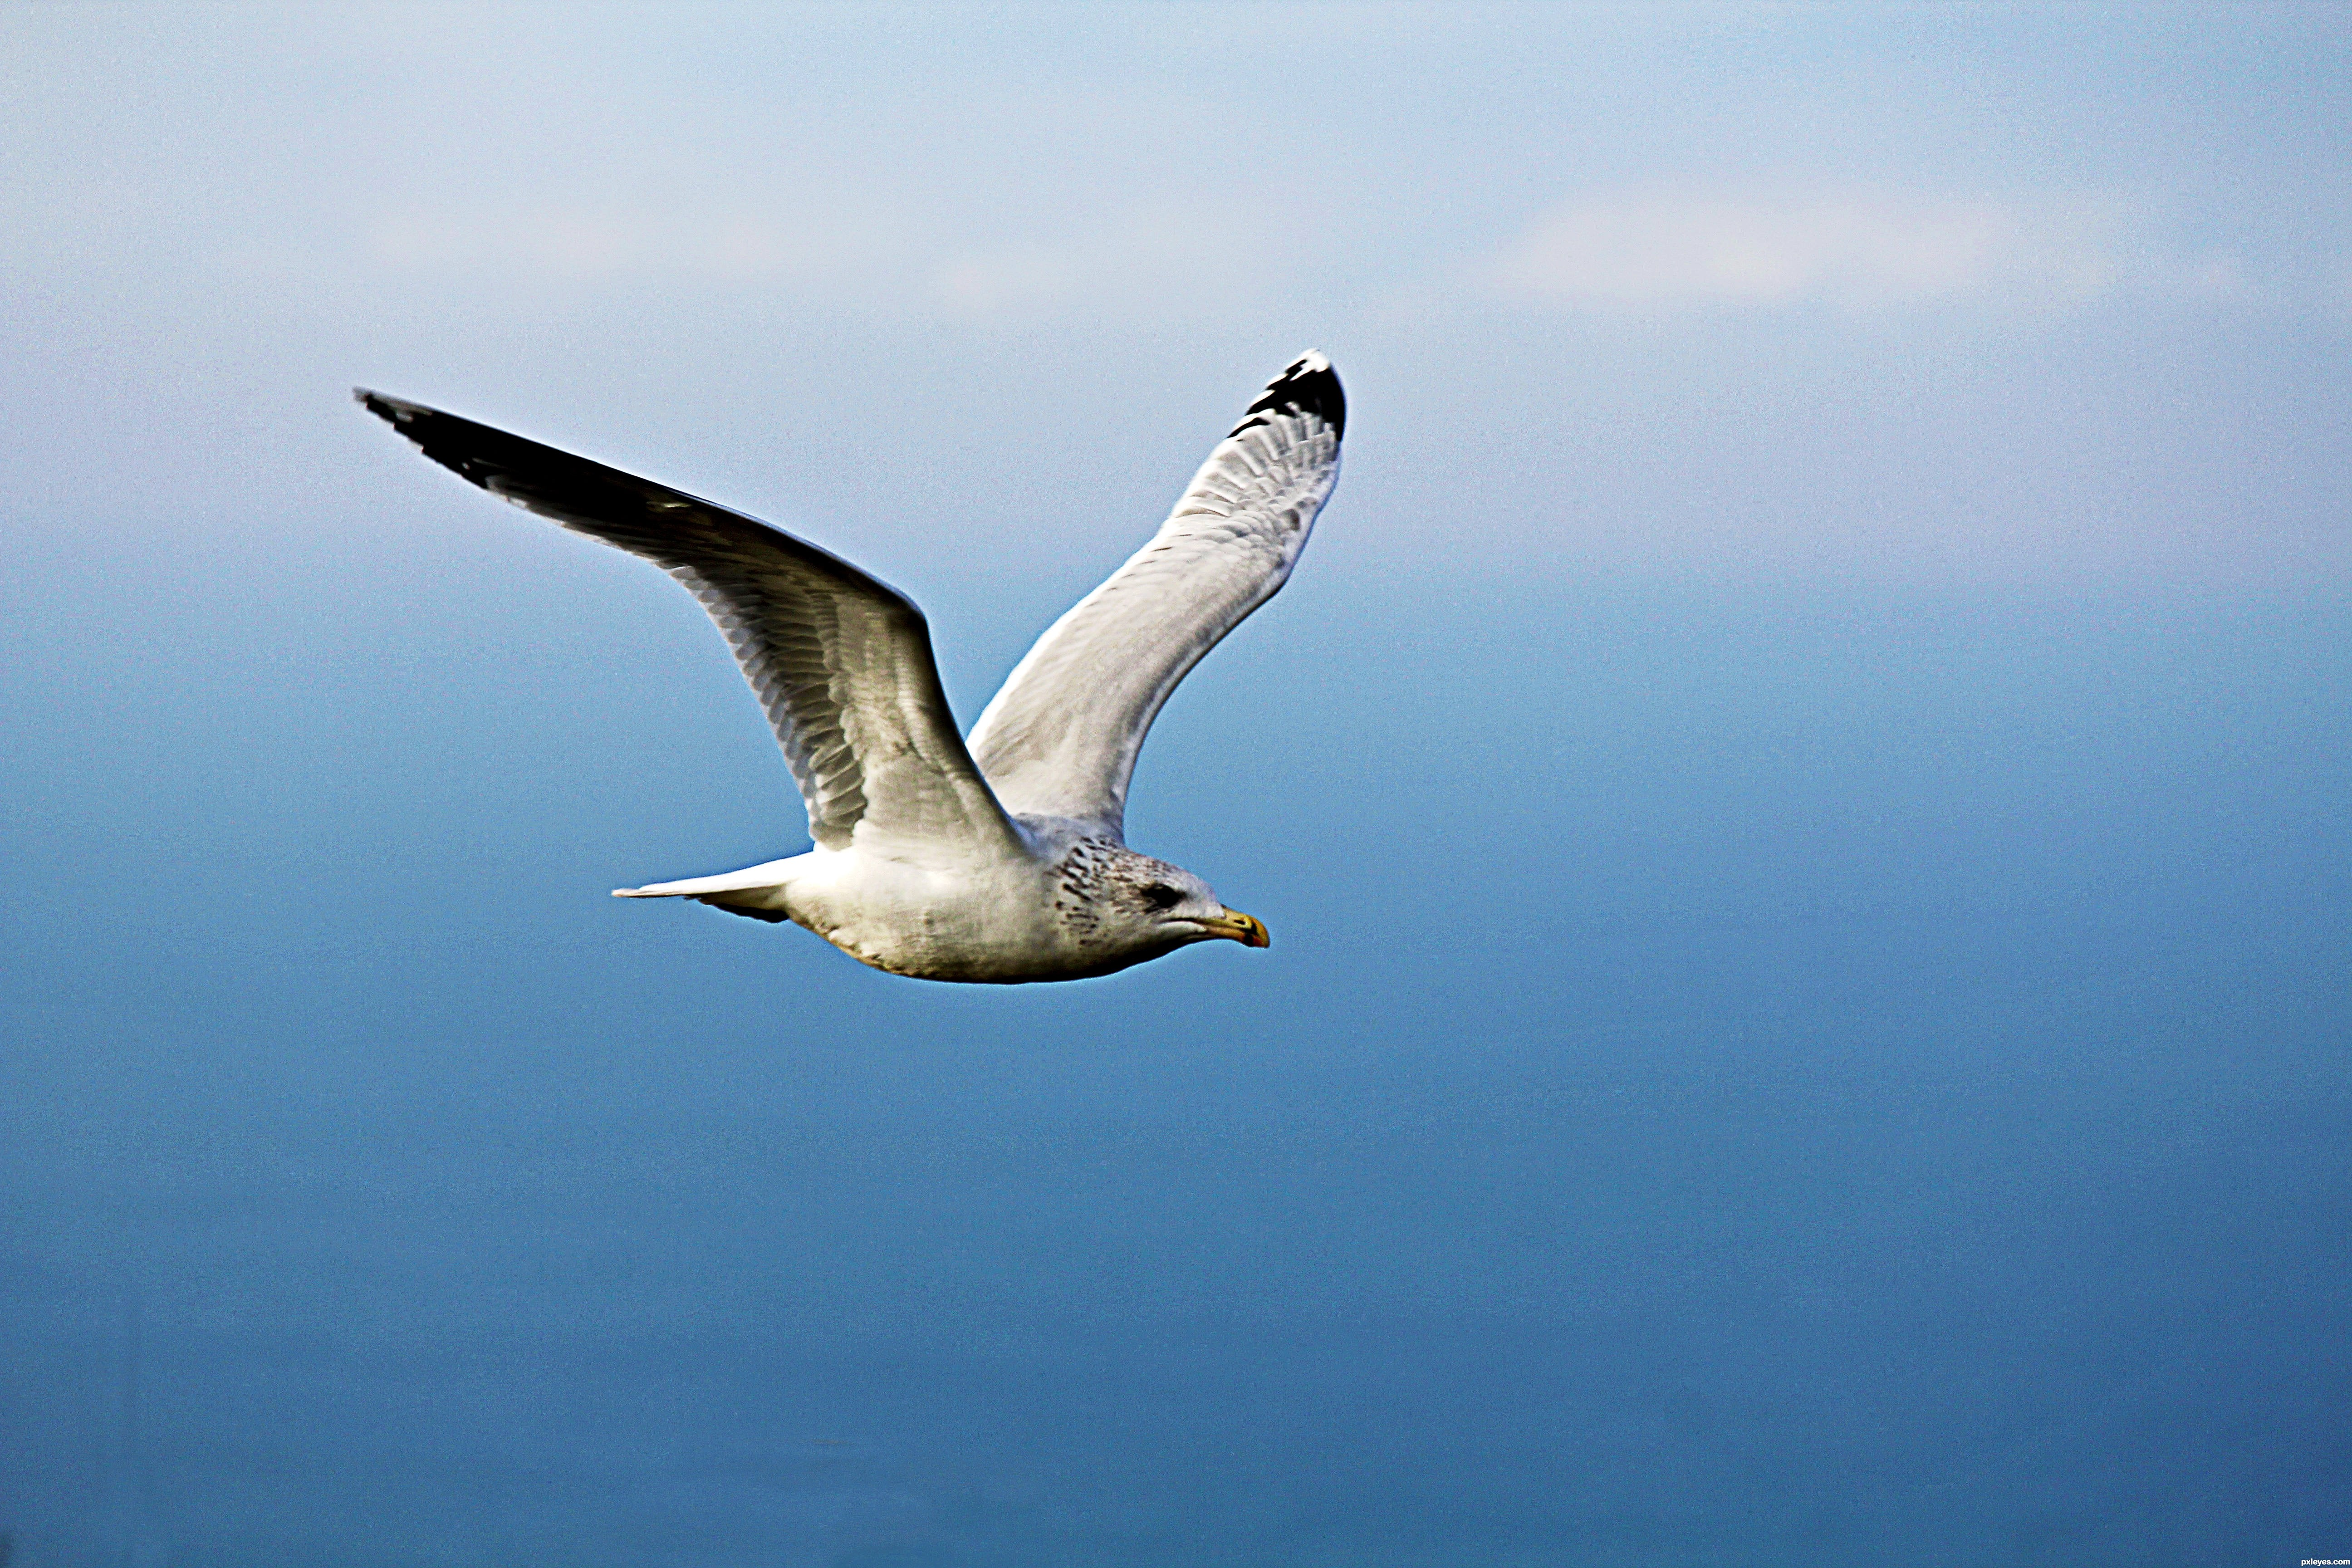 Bad Seagull picture, by qlmos7 for: bird flight photography contest ...